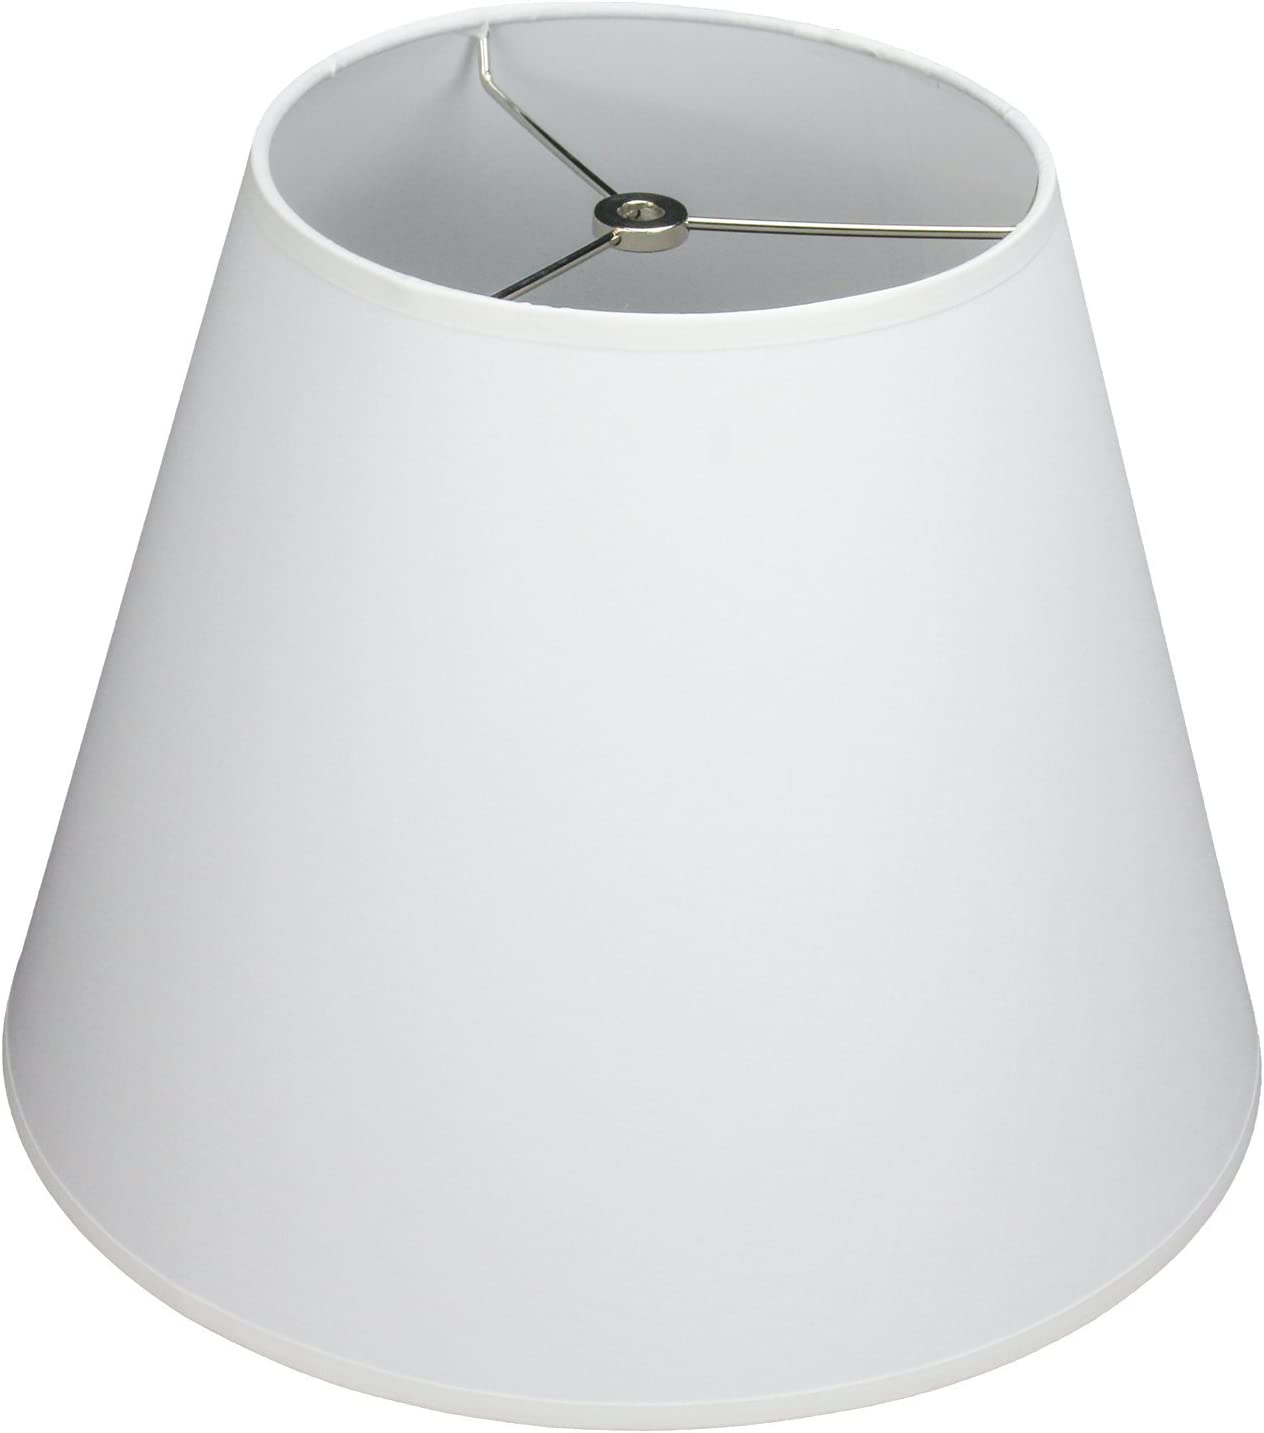 Fenchelshades Com Lampshade 8 Top Diameter X 14 Bottom Diameter X 11 Slant Height With Washer Spider Attachment For Lamps With A Harp White